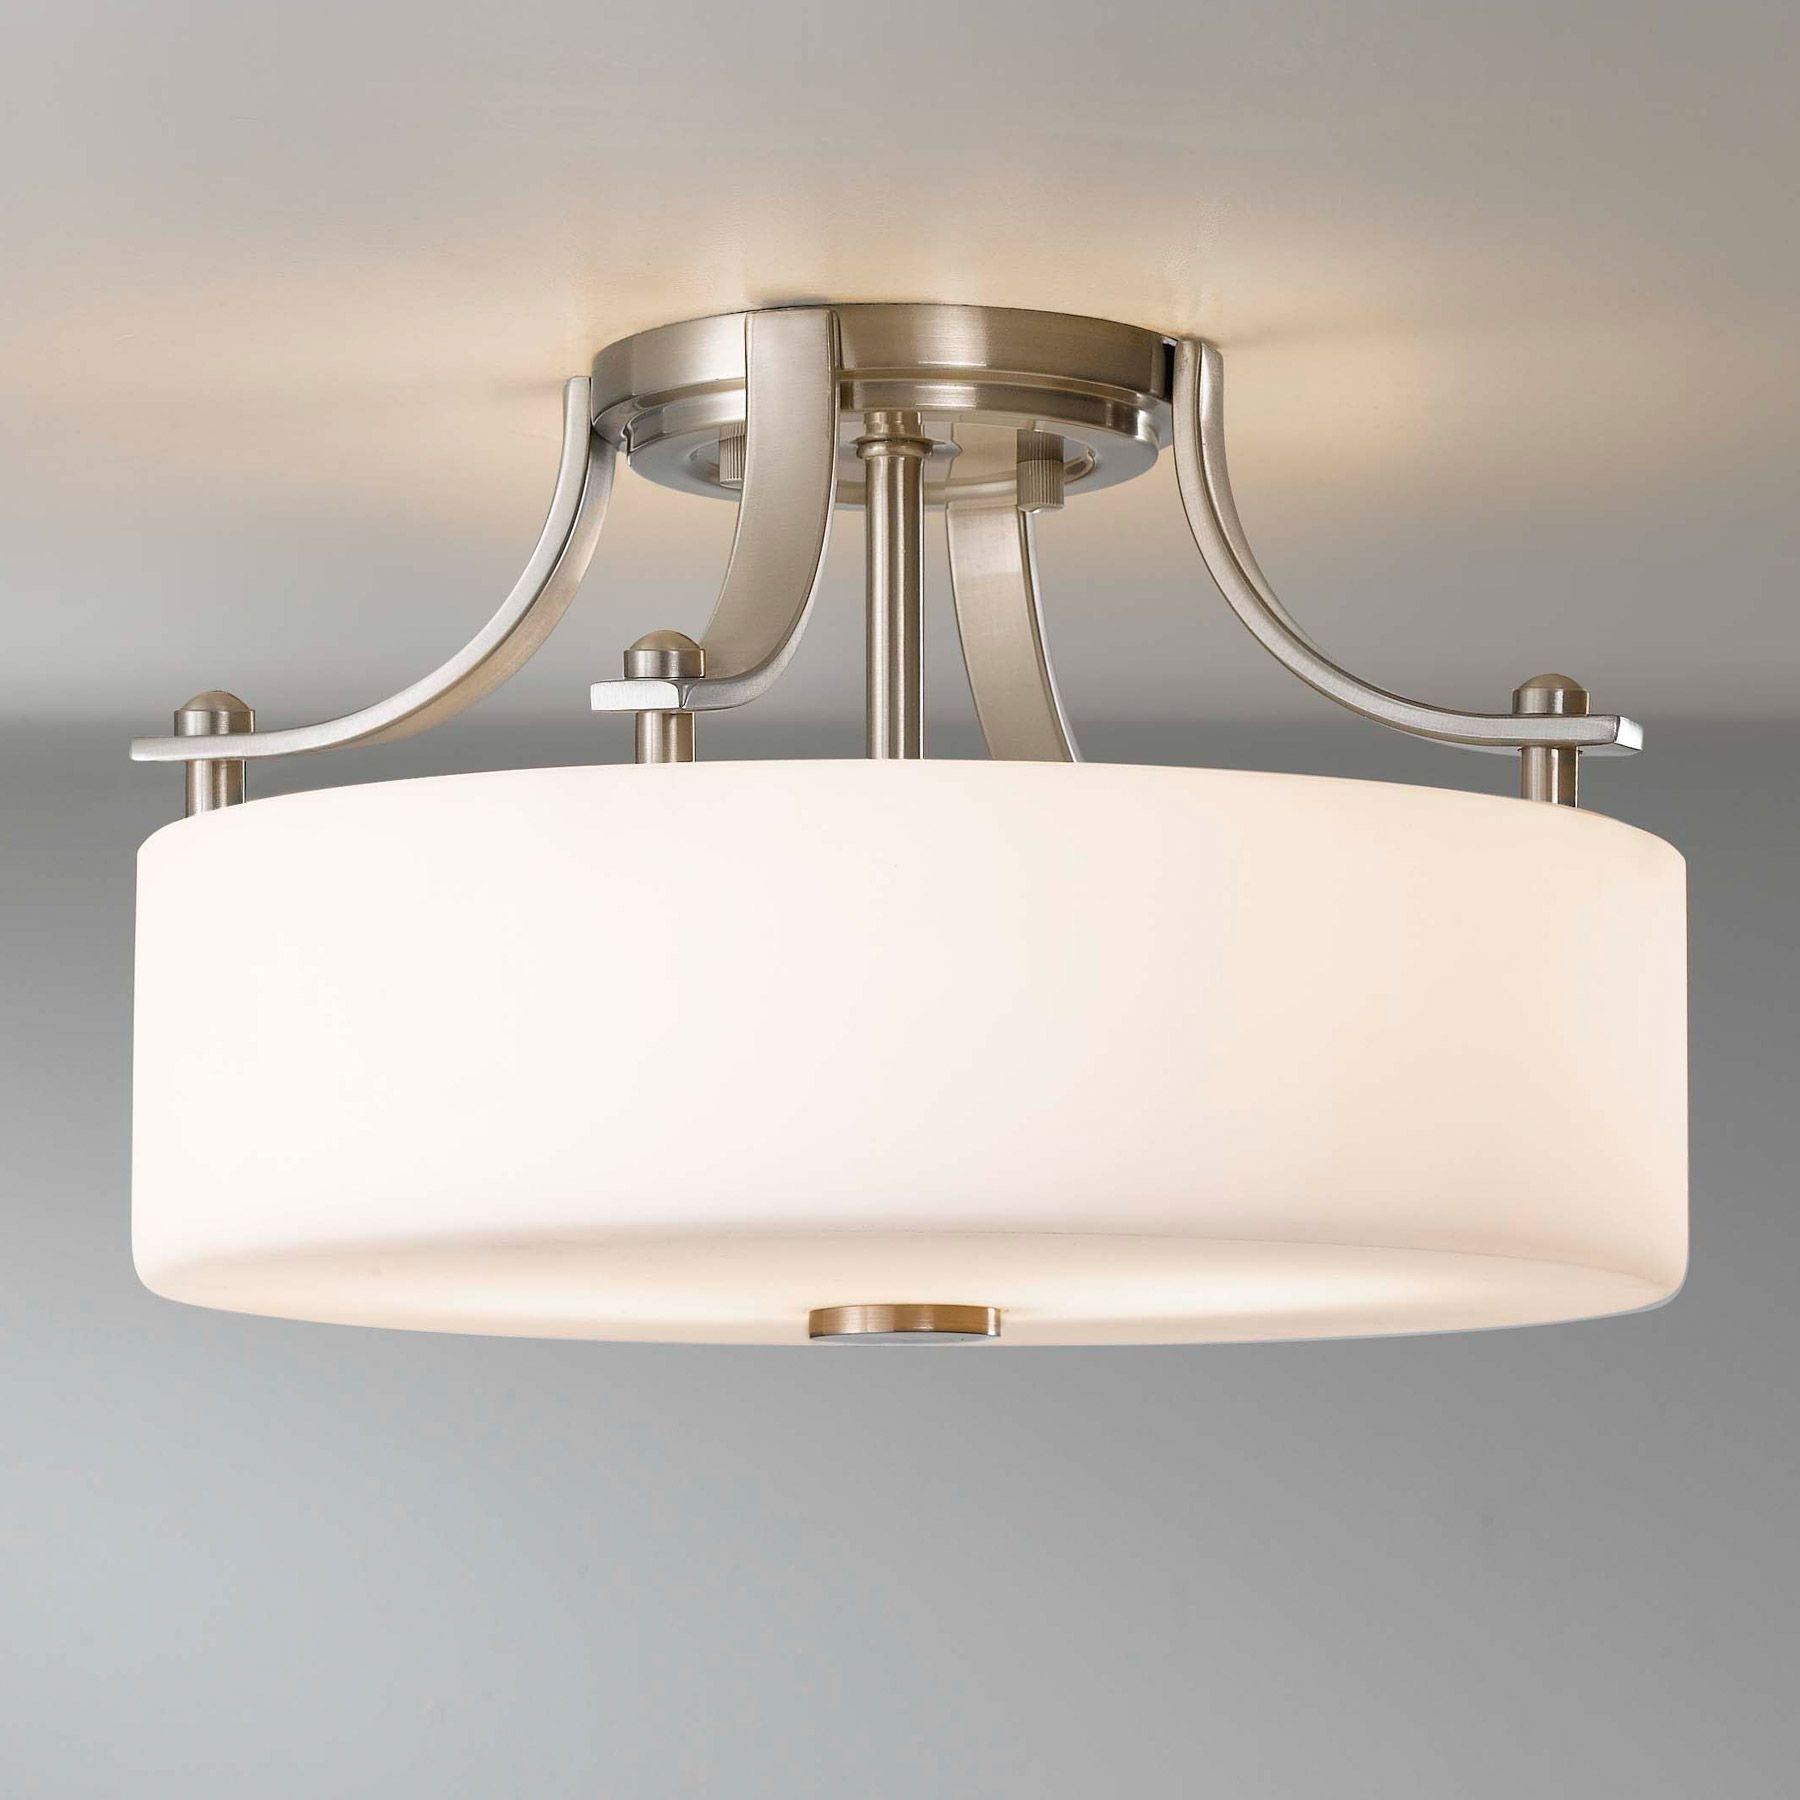 Kitchen Light Fixtures Flush Mount White Flushmount Light Fixture Flush Mount Ceiling Light